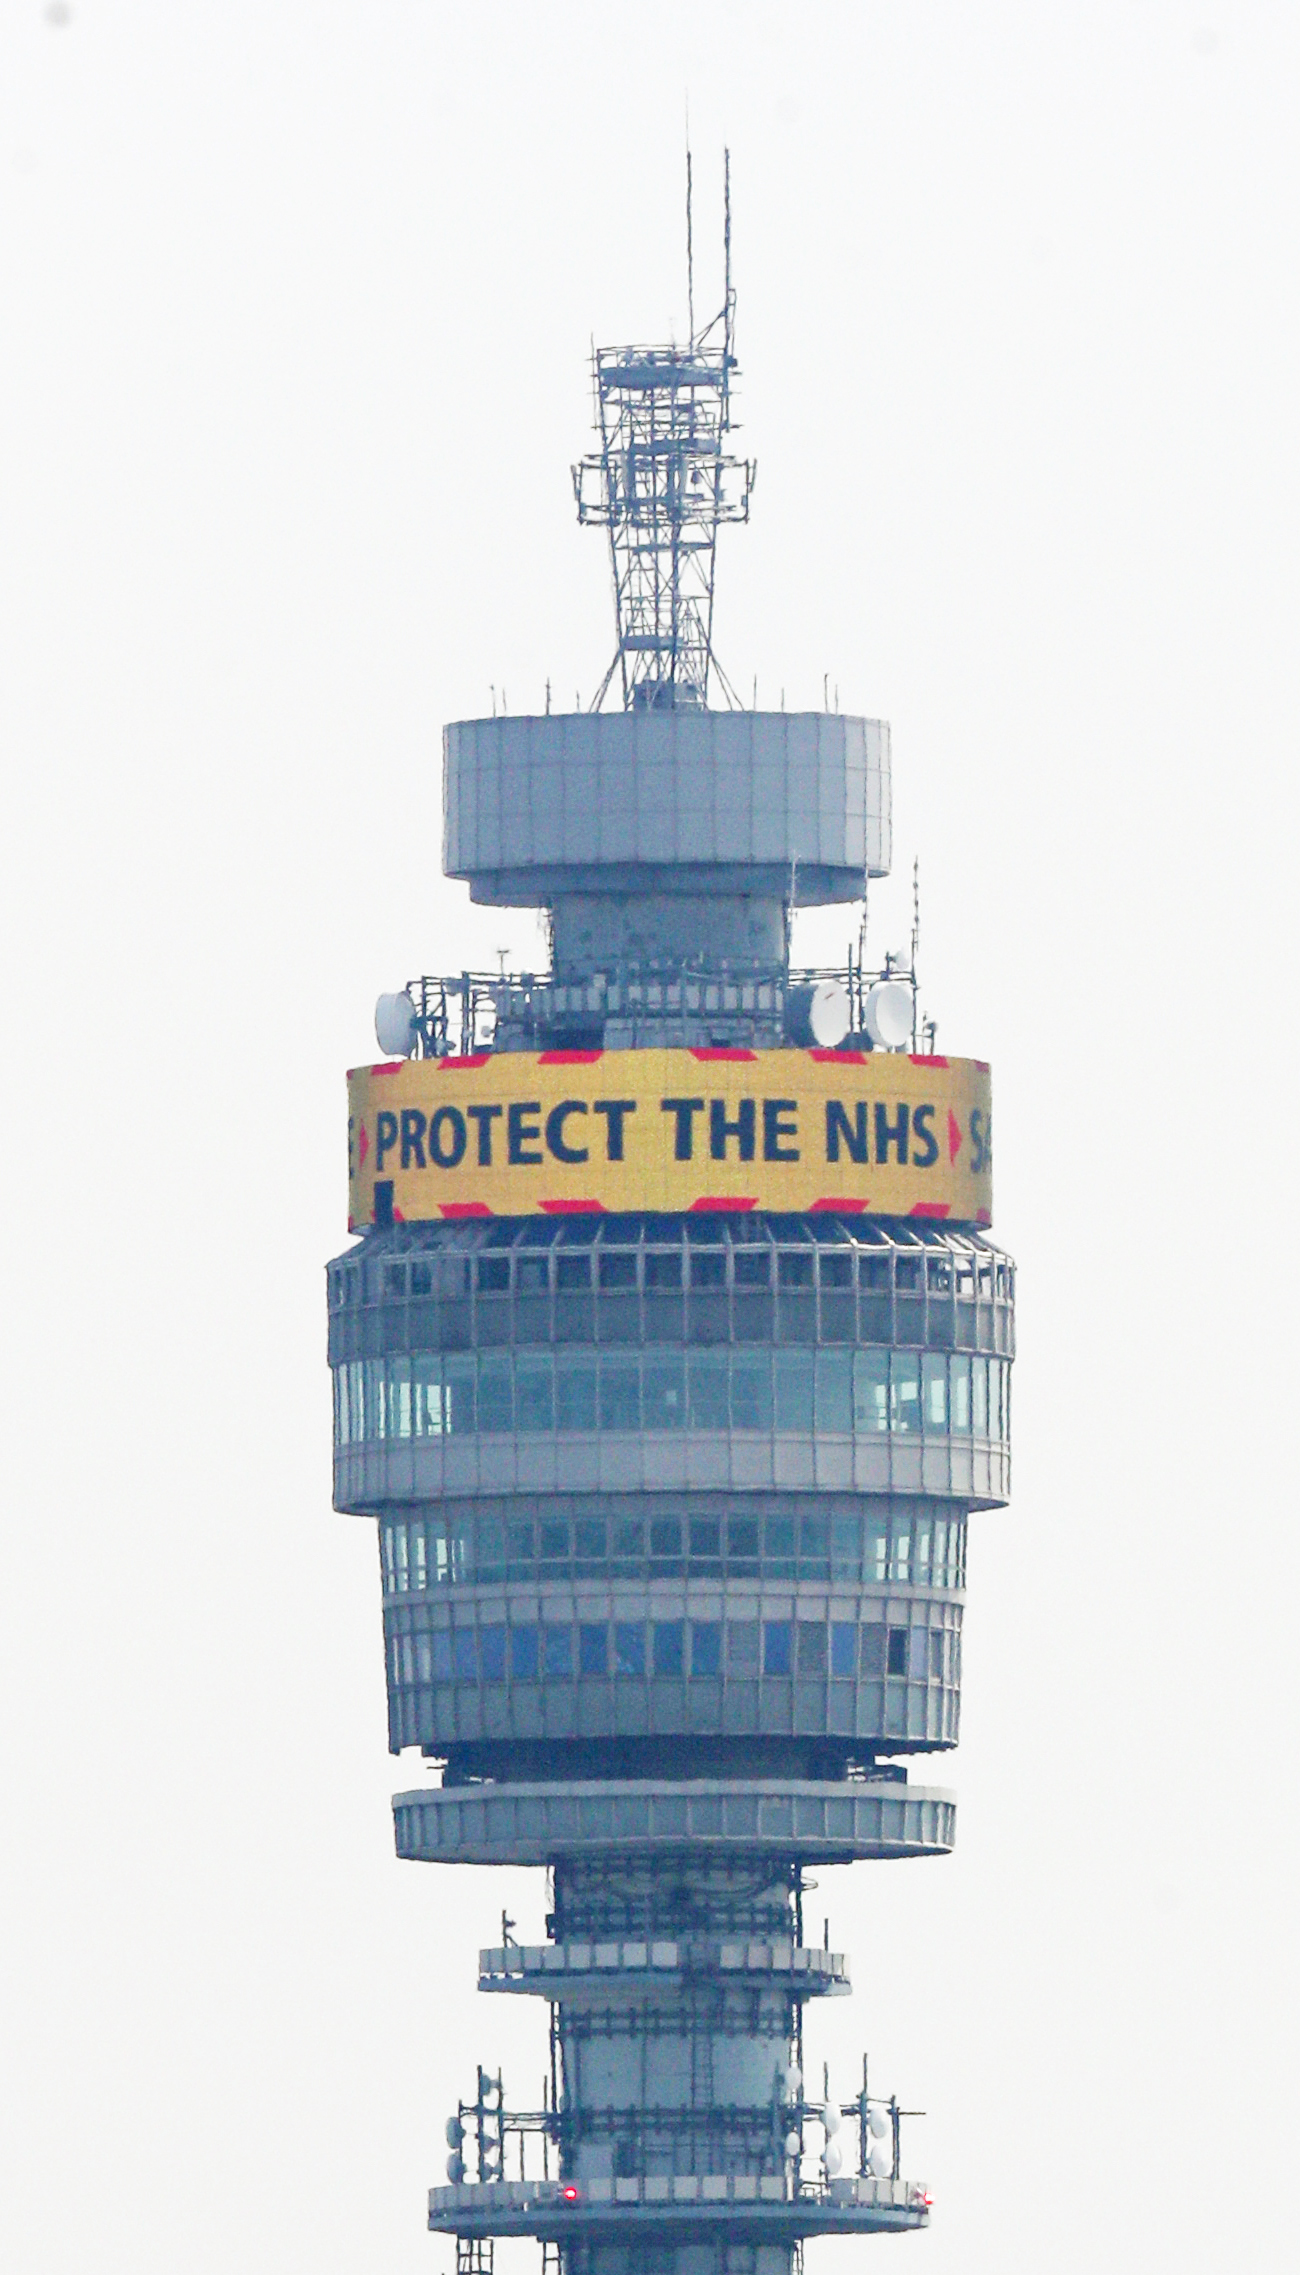 The government's message: 'Stay Home, Protect the NHS, Save Lives' is shown in lights on the rotating display near the top of the BT Tower in the Fitzrovia area of London as the UK continues in lockdown to fight the coronavirus pandemic.